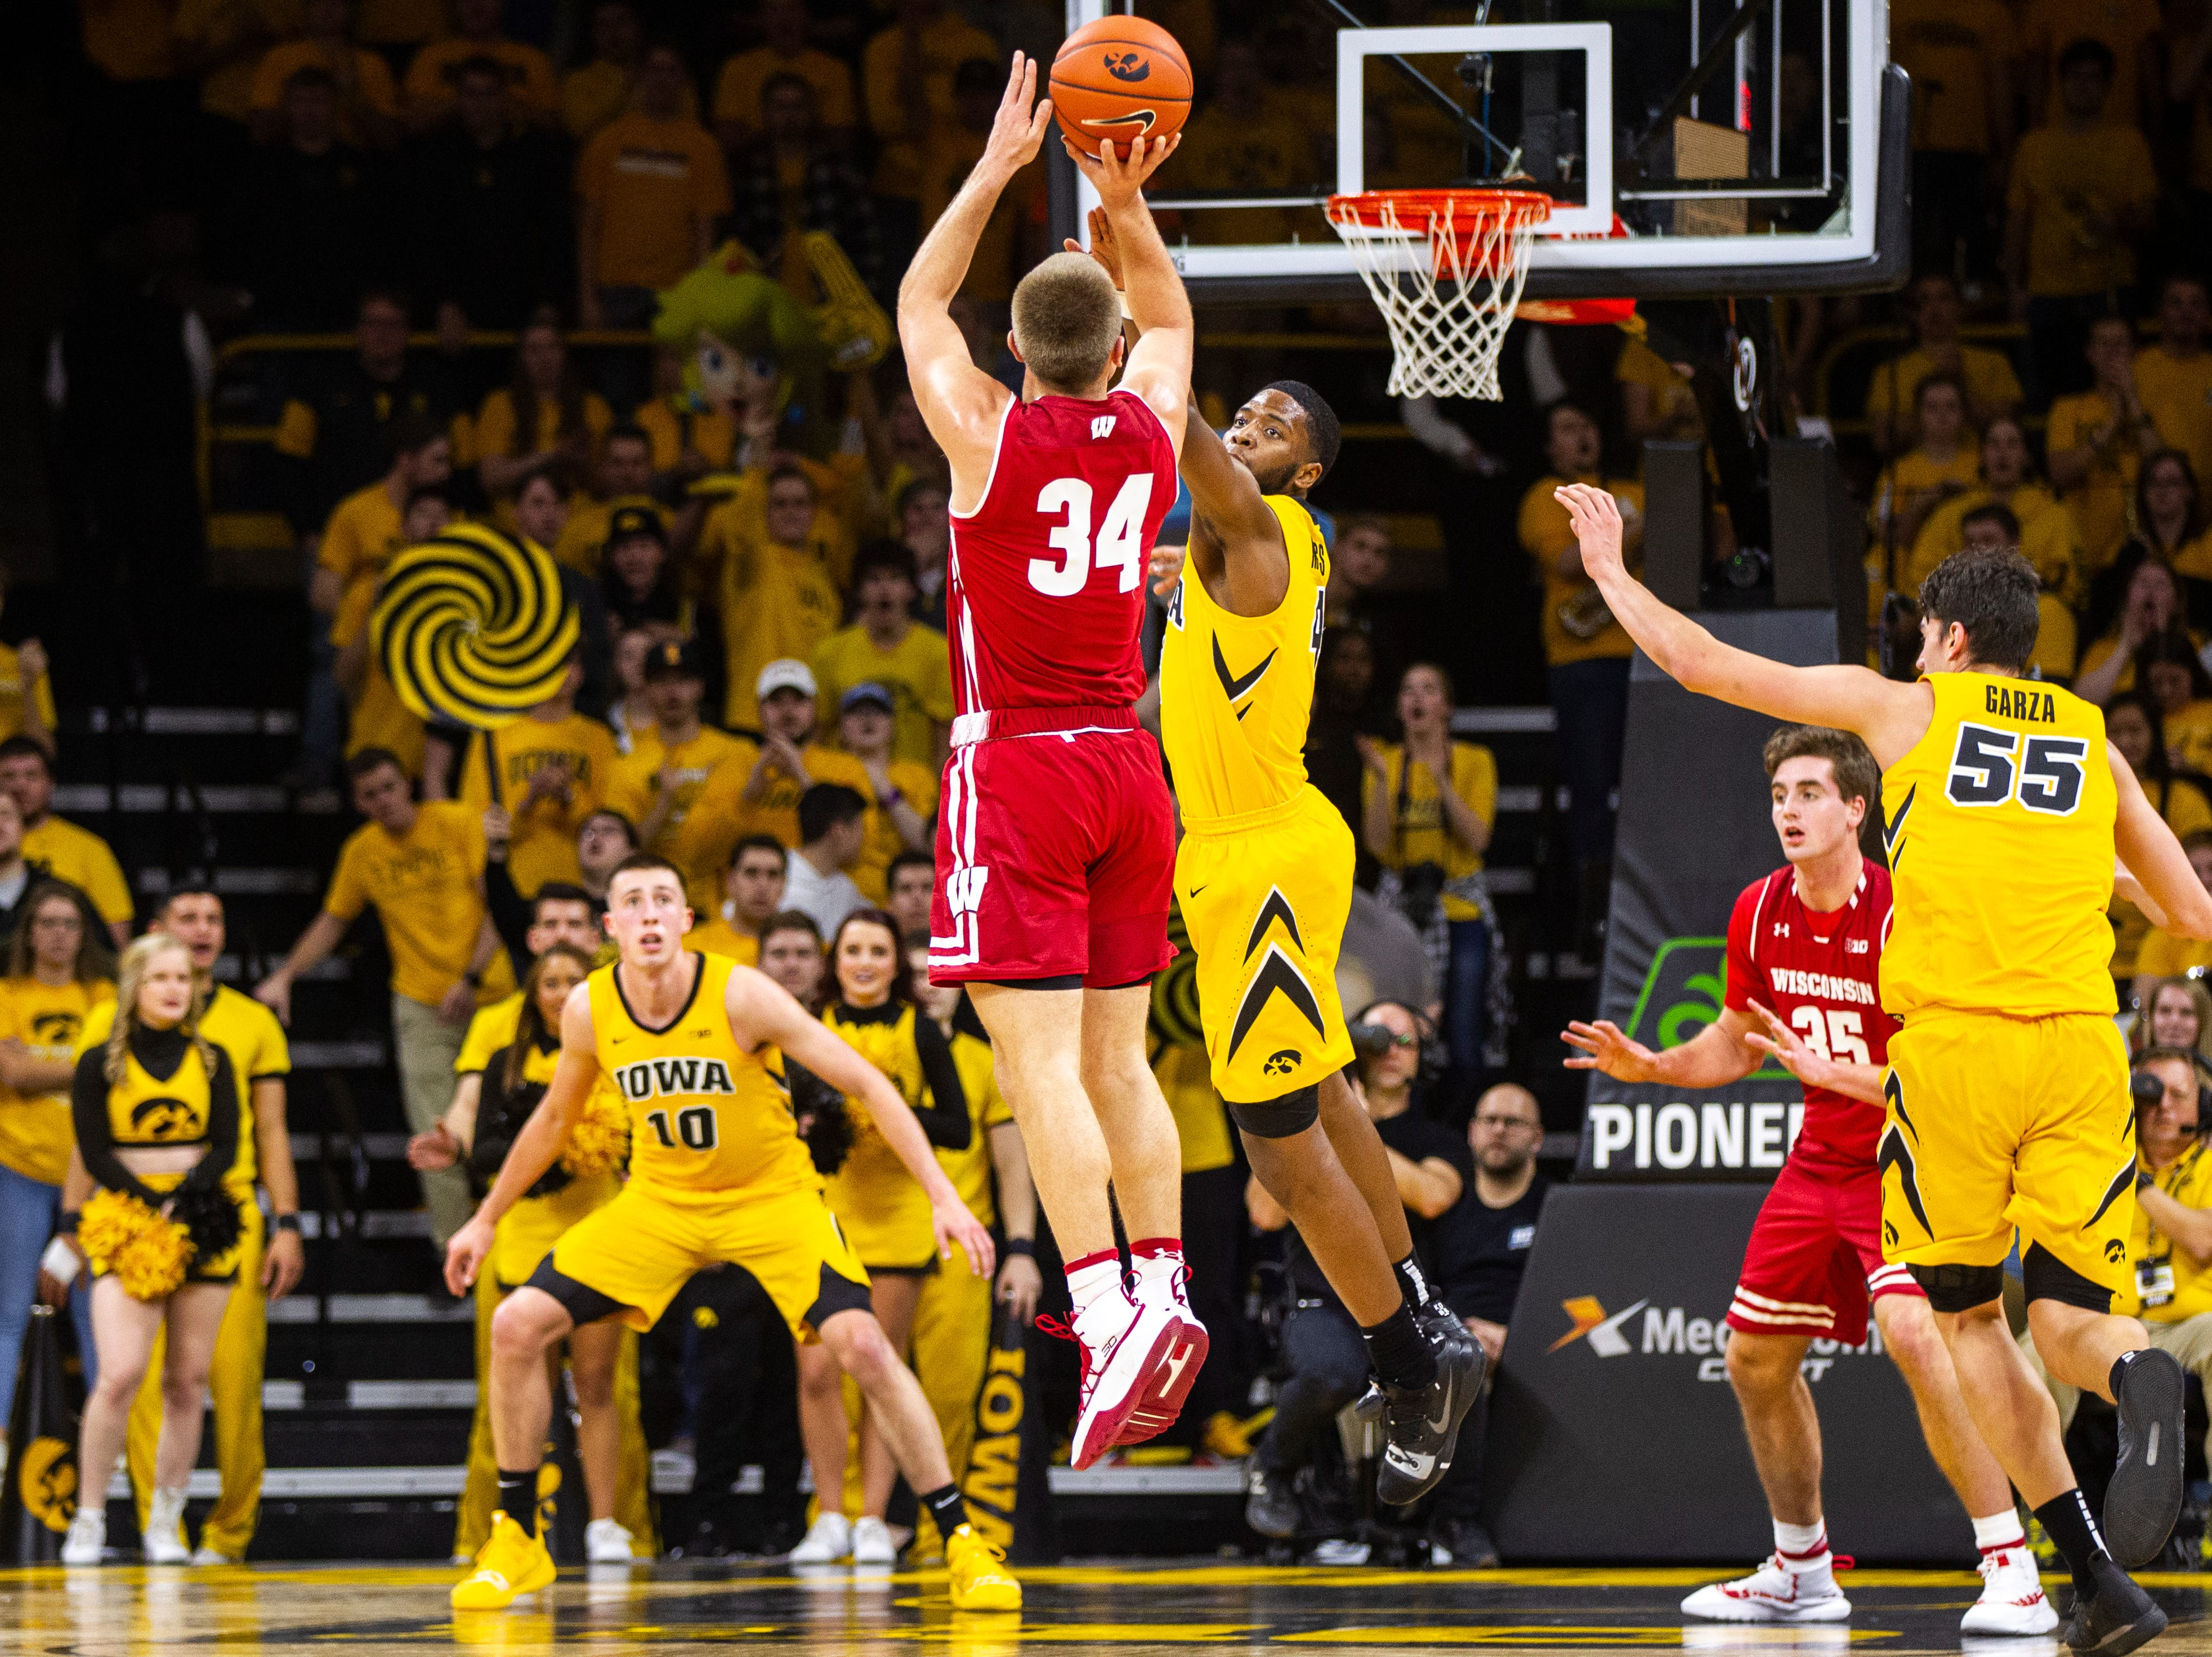 Wisconsin's Brad Davidson (34) attempts a 3-point basket over Iowa guard Isaiah Moss (4) during a NCAA Big Ten Conference men's basketball game on Friday, Nov. 30, 2018, at Carver-Hawkeye Arena in Iowa City.